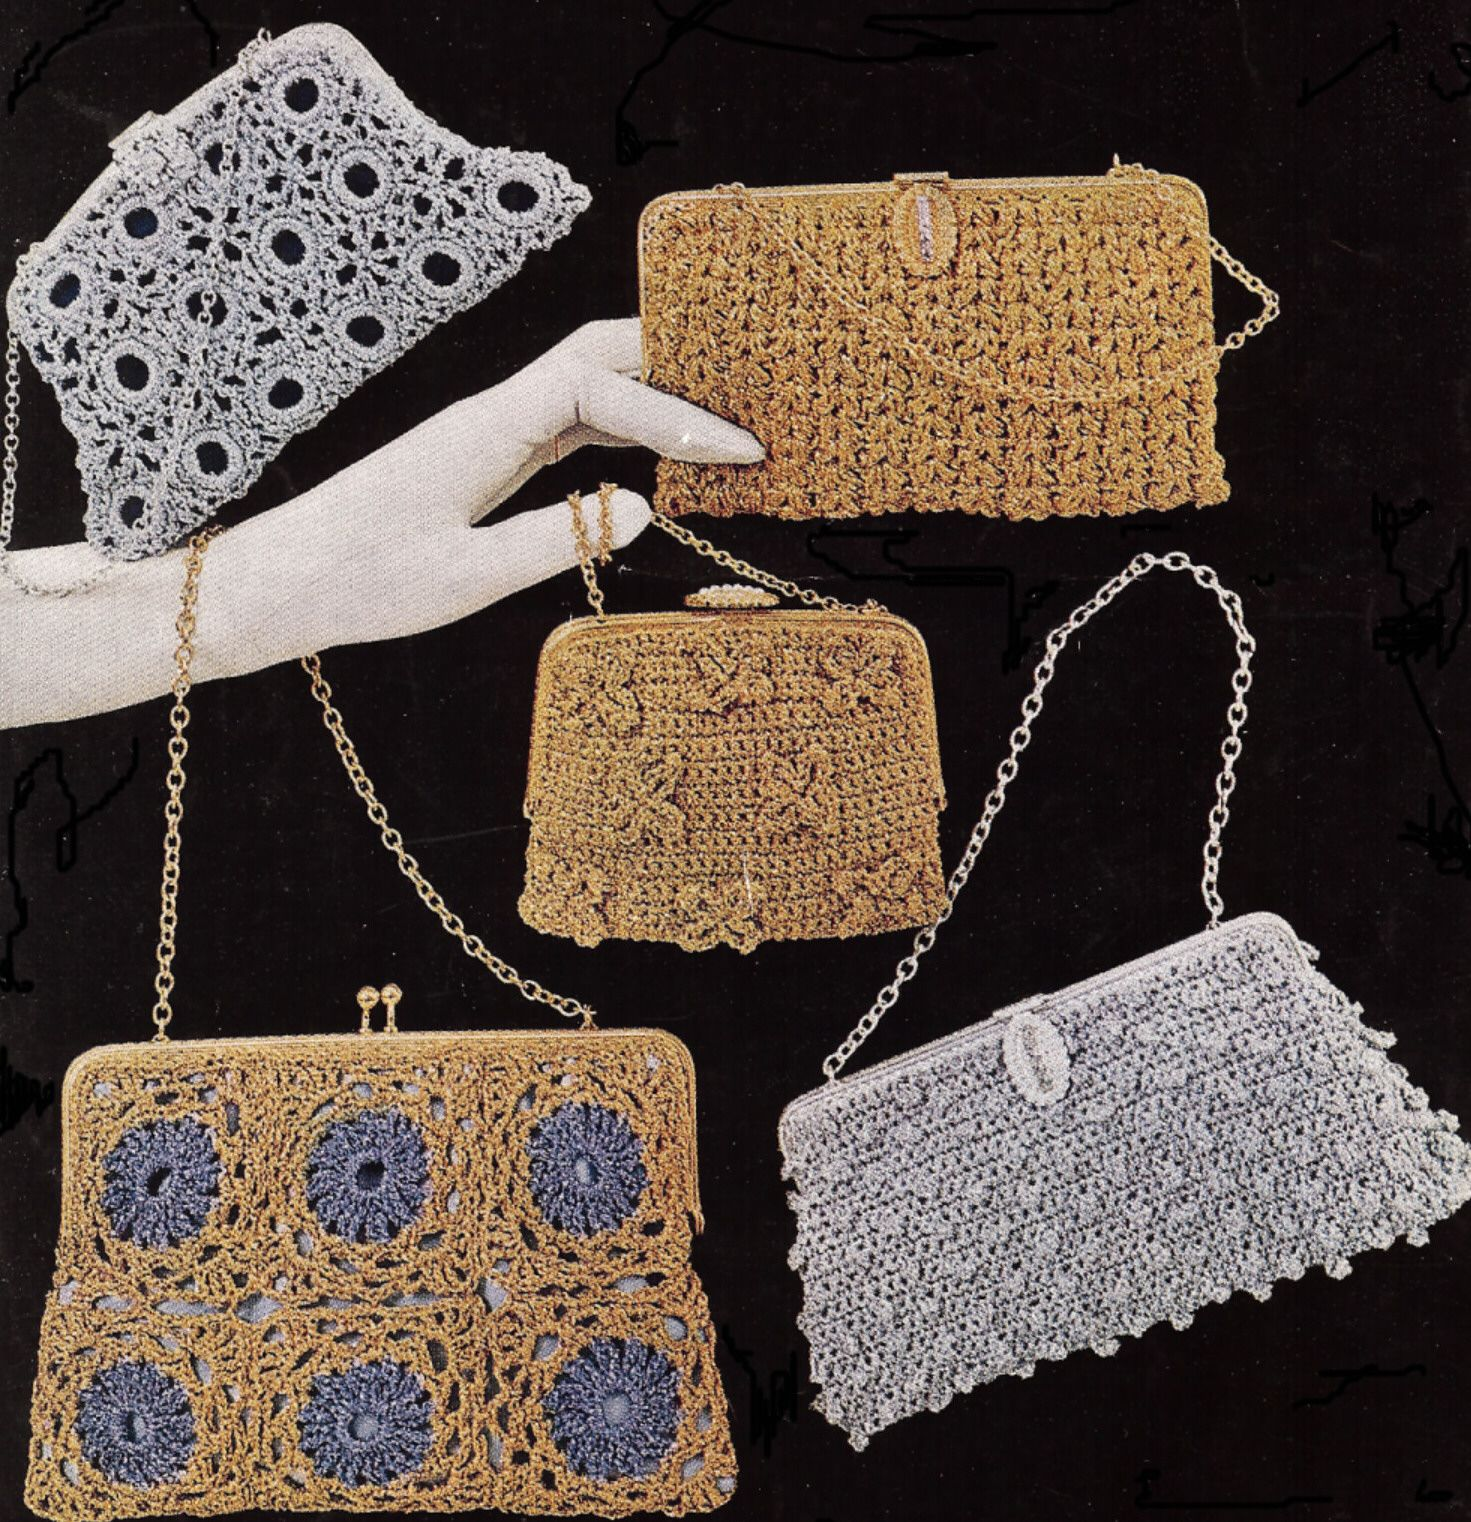 5 Vintage Crochet Holiday Party Evening Bag Patterns | Crochet ...